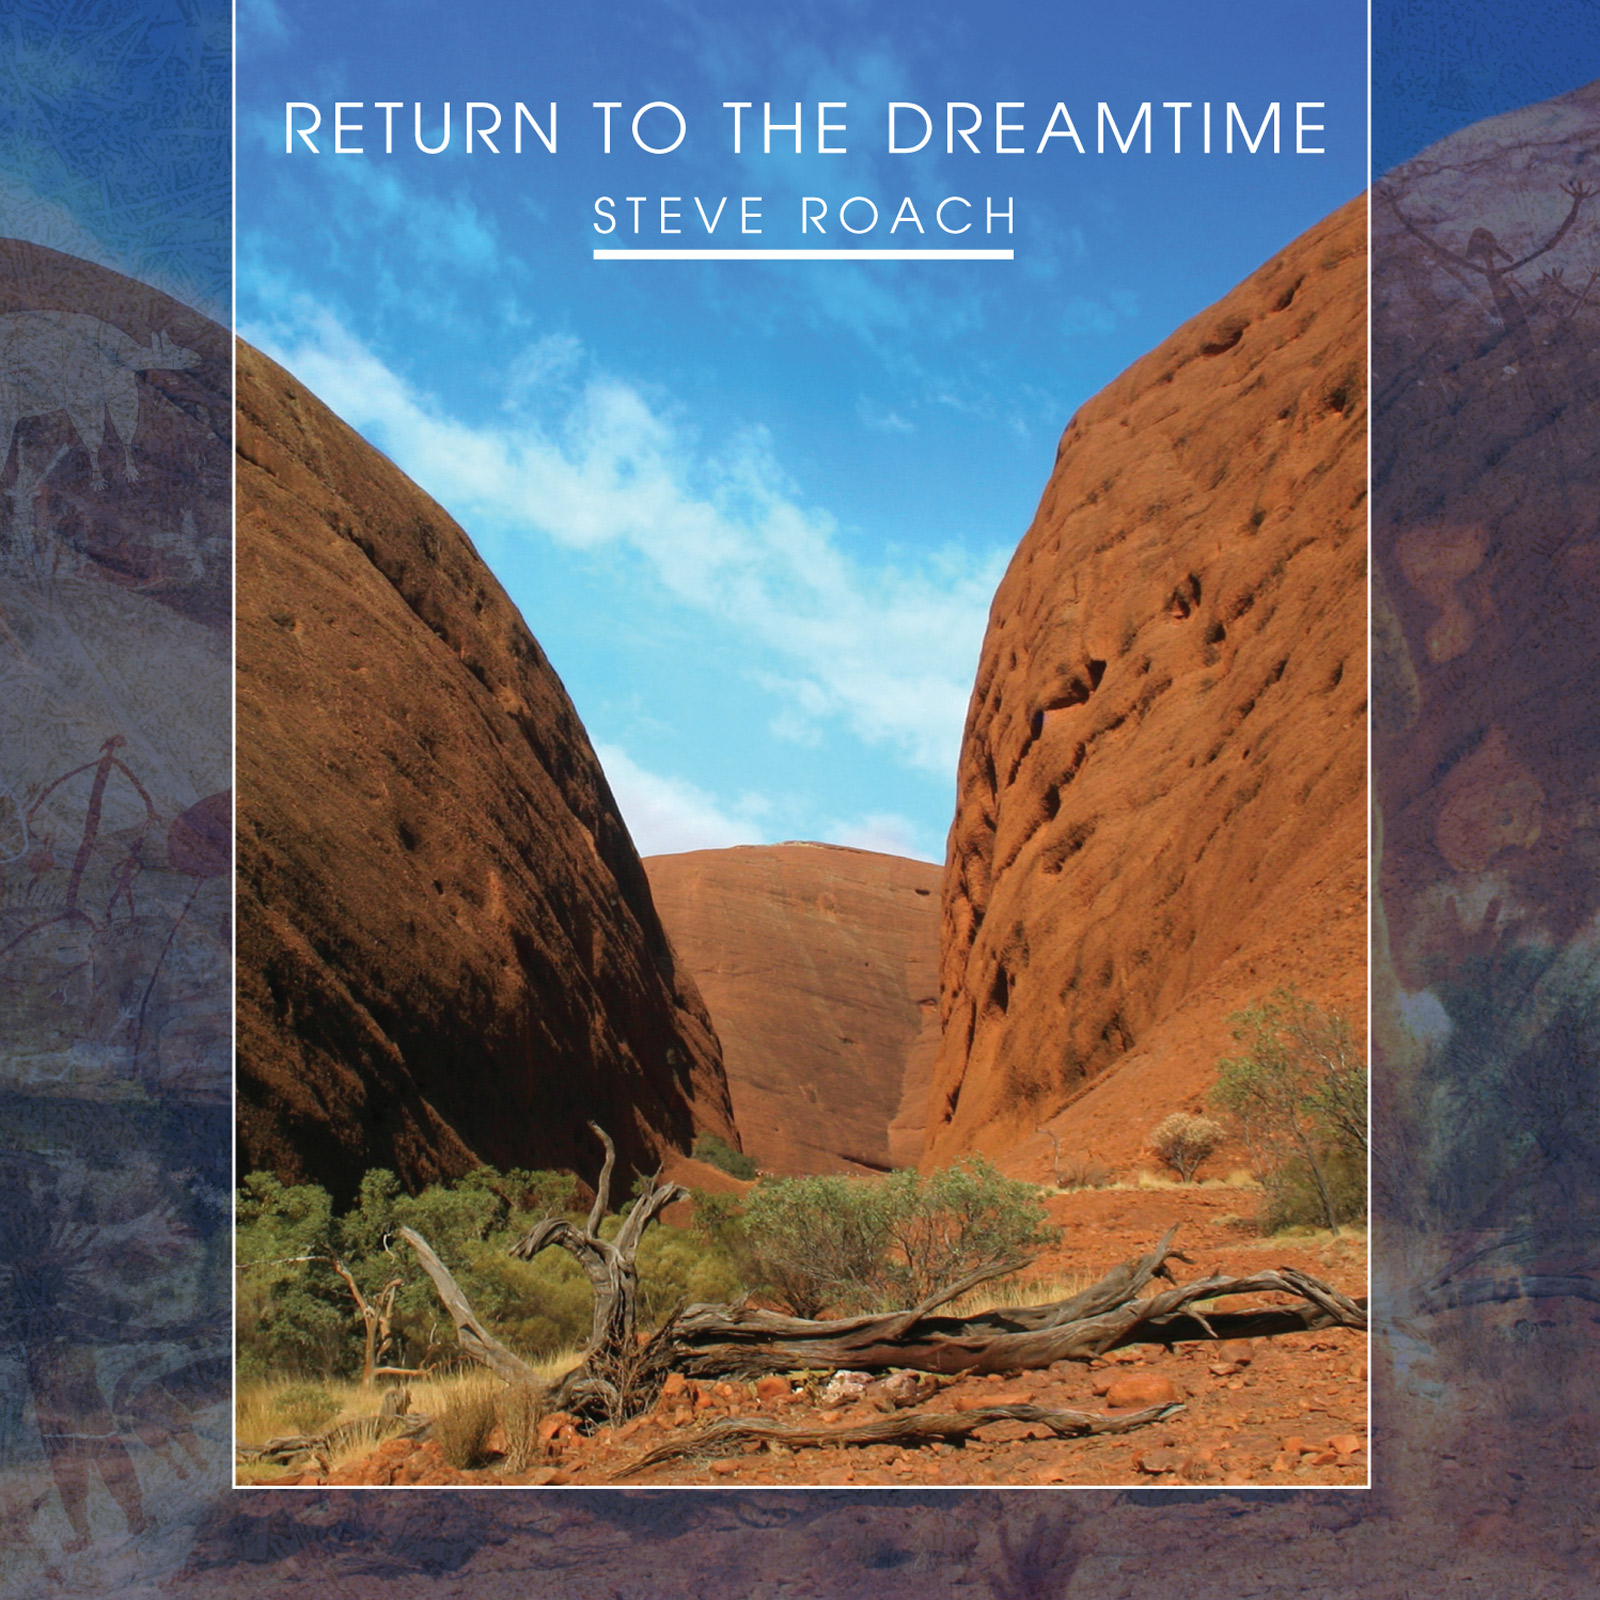 Steve Roach — Return to the Dreamtime